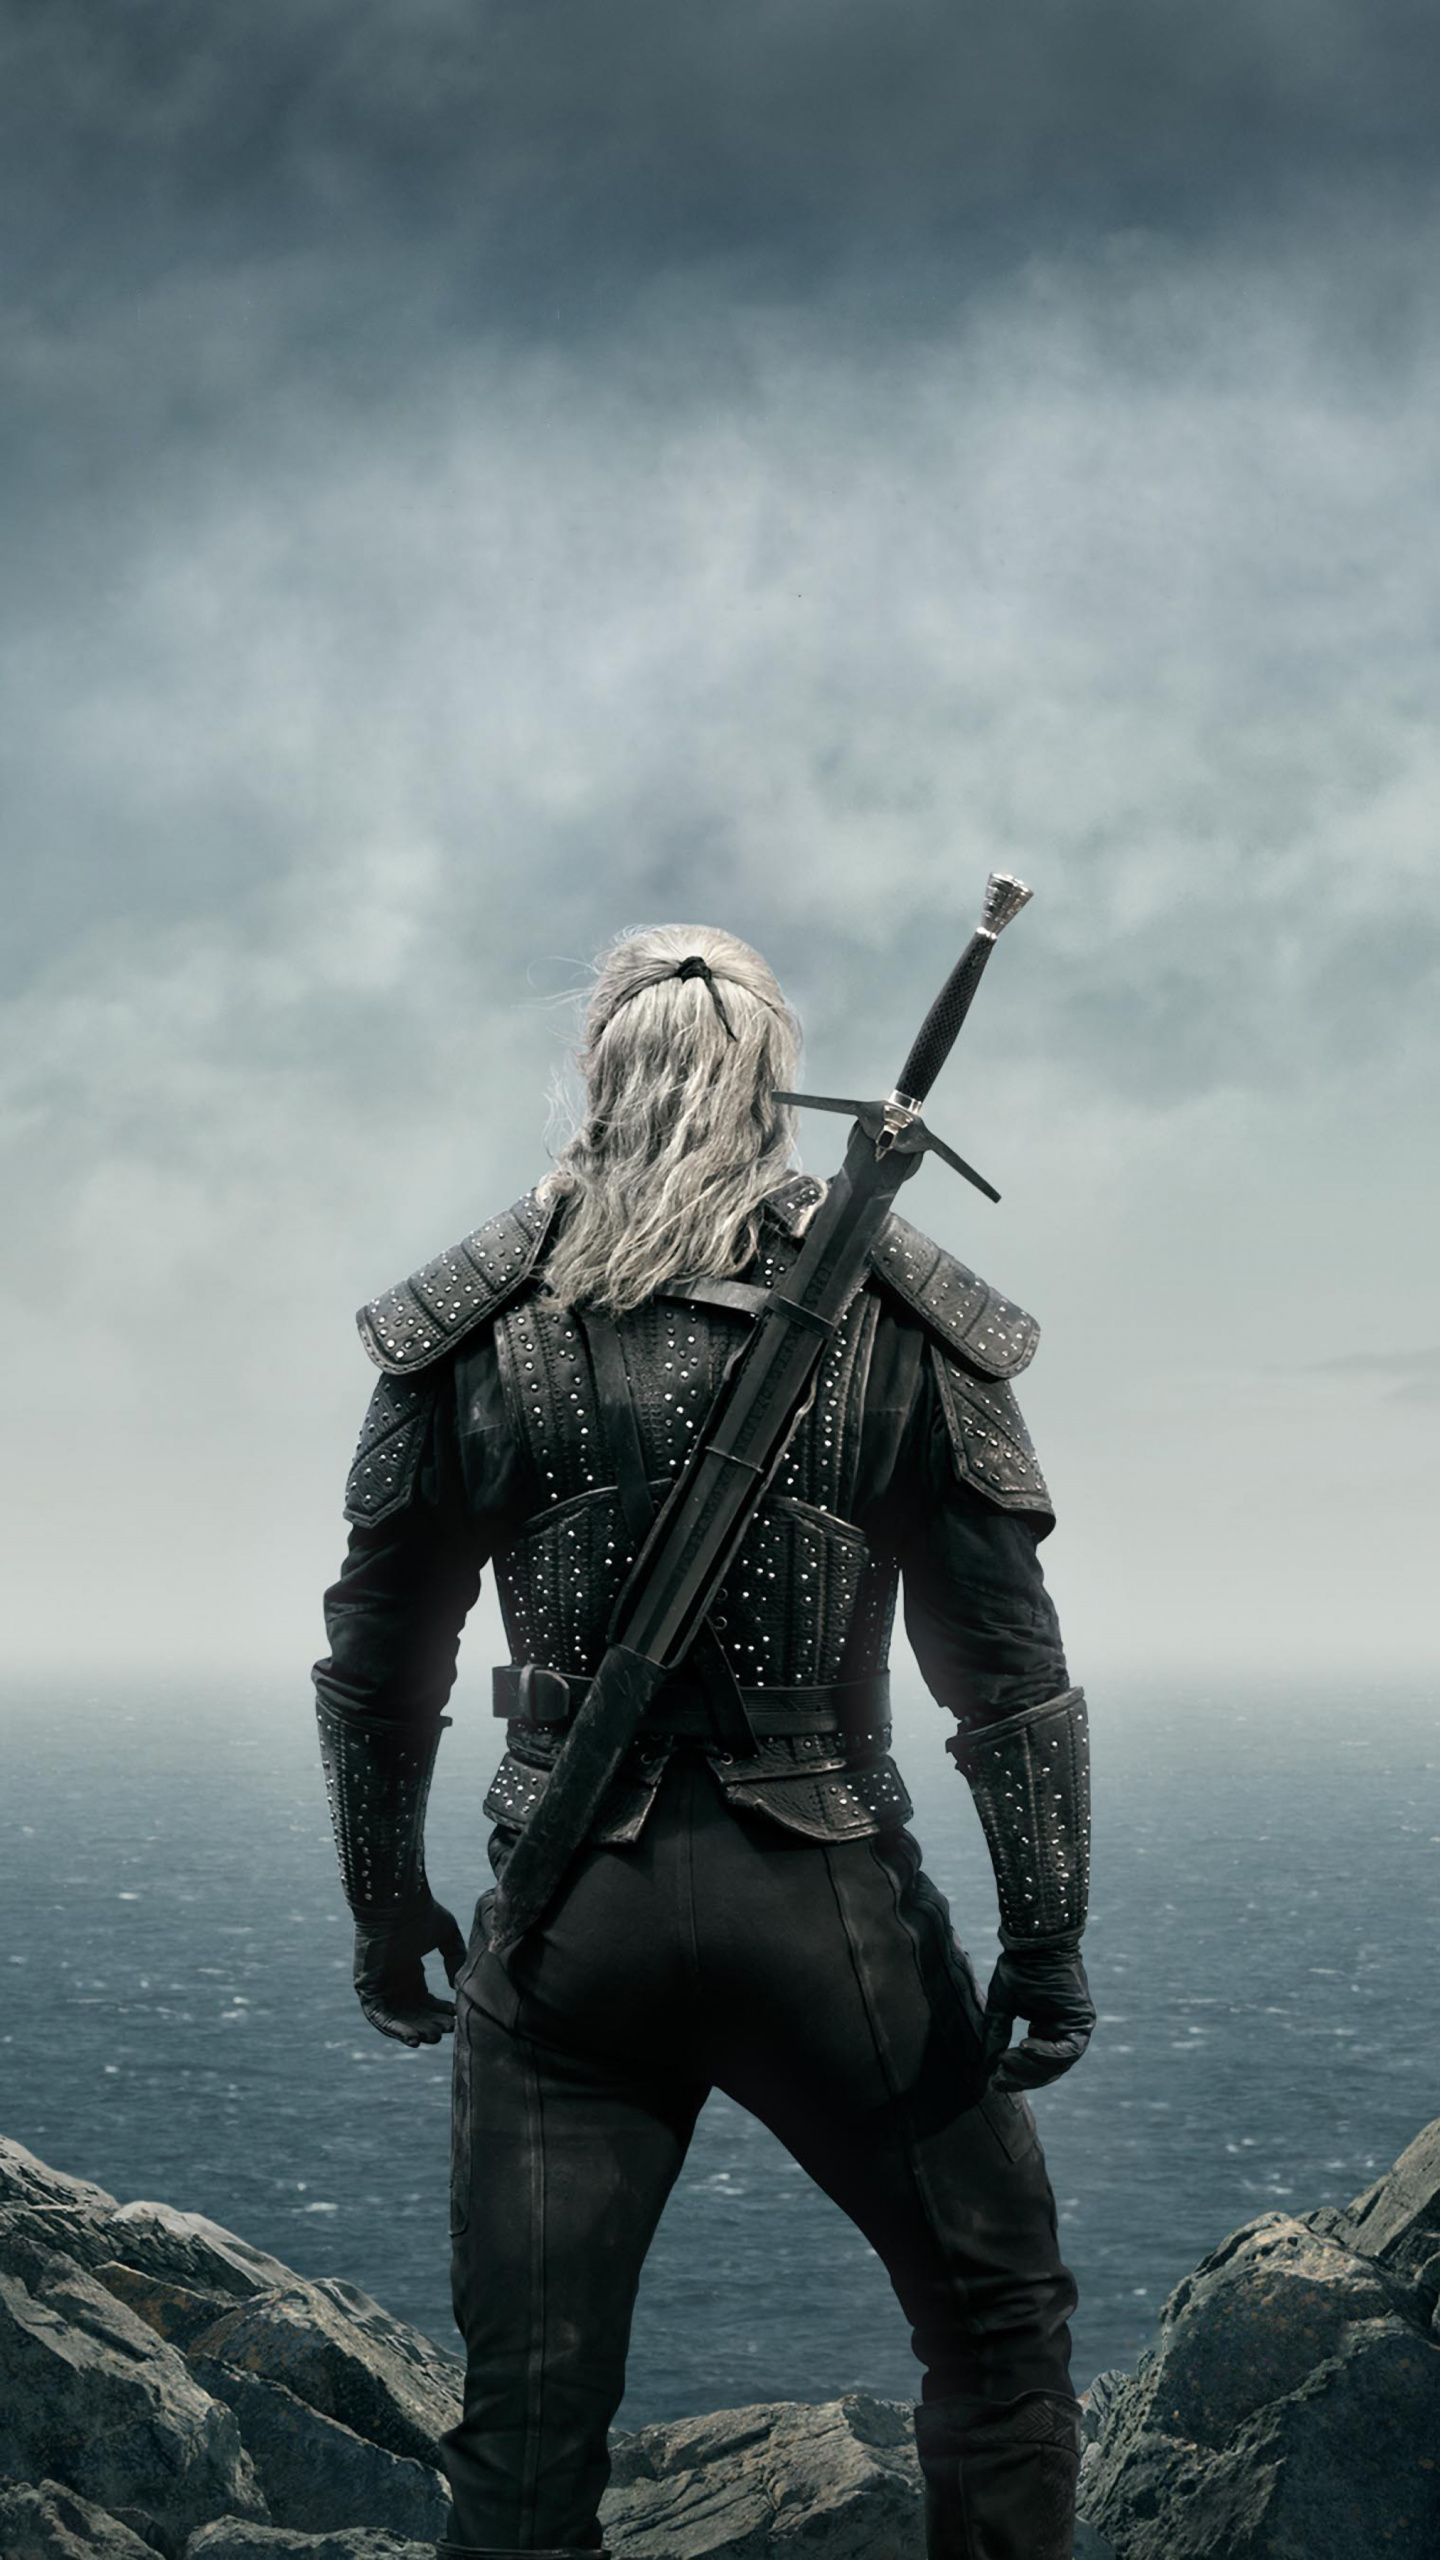 1440x2560 The Witcher, warrior, 2019, Netflix TV show